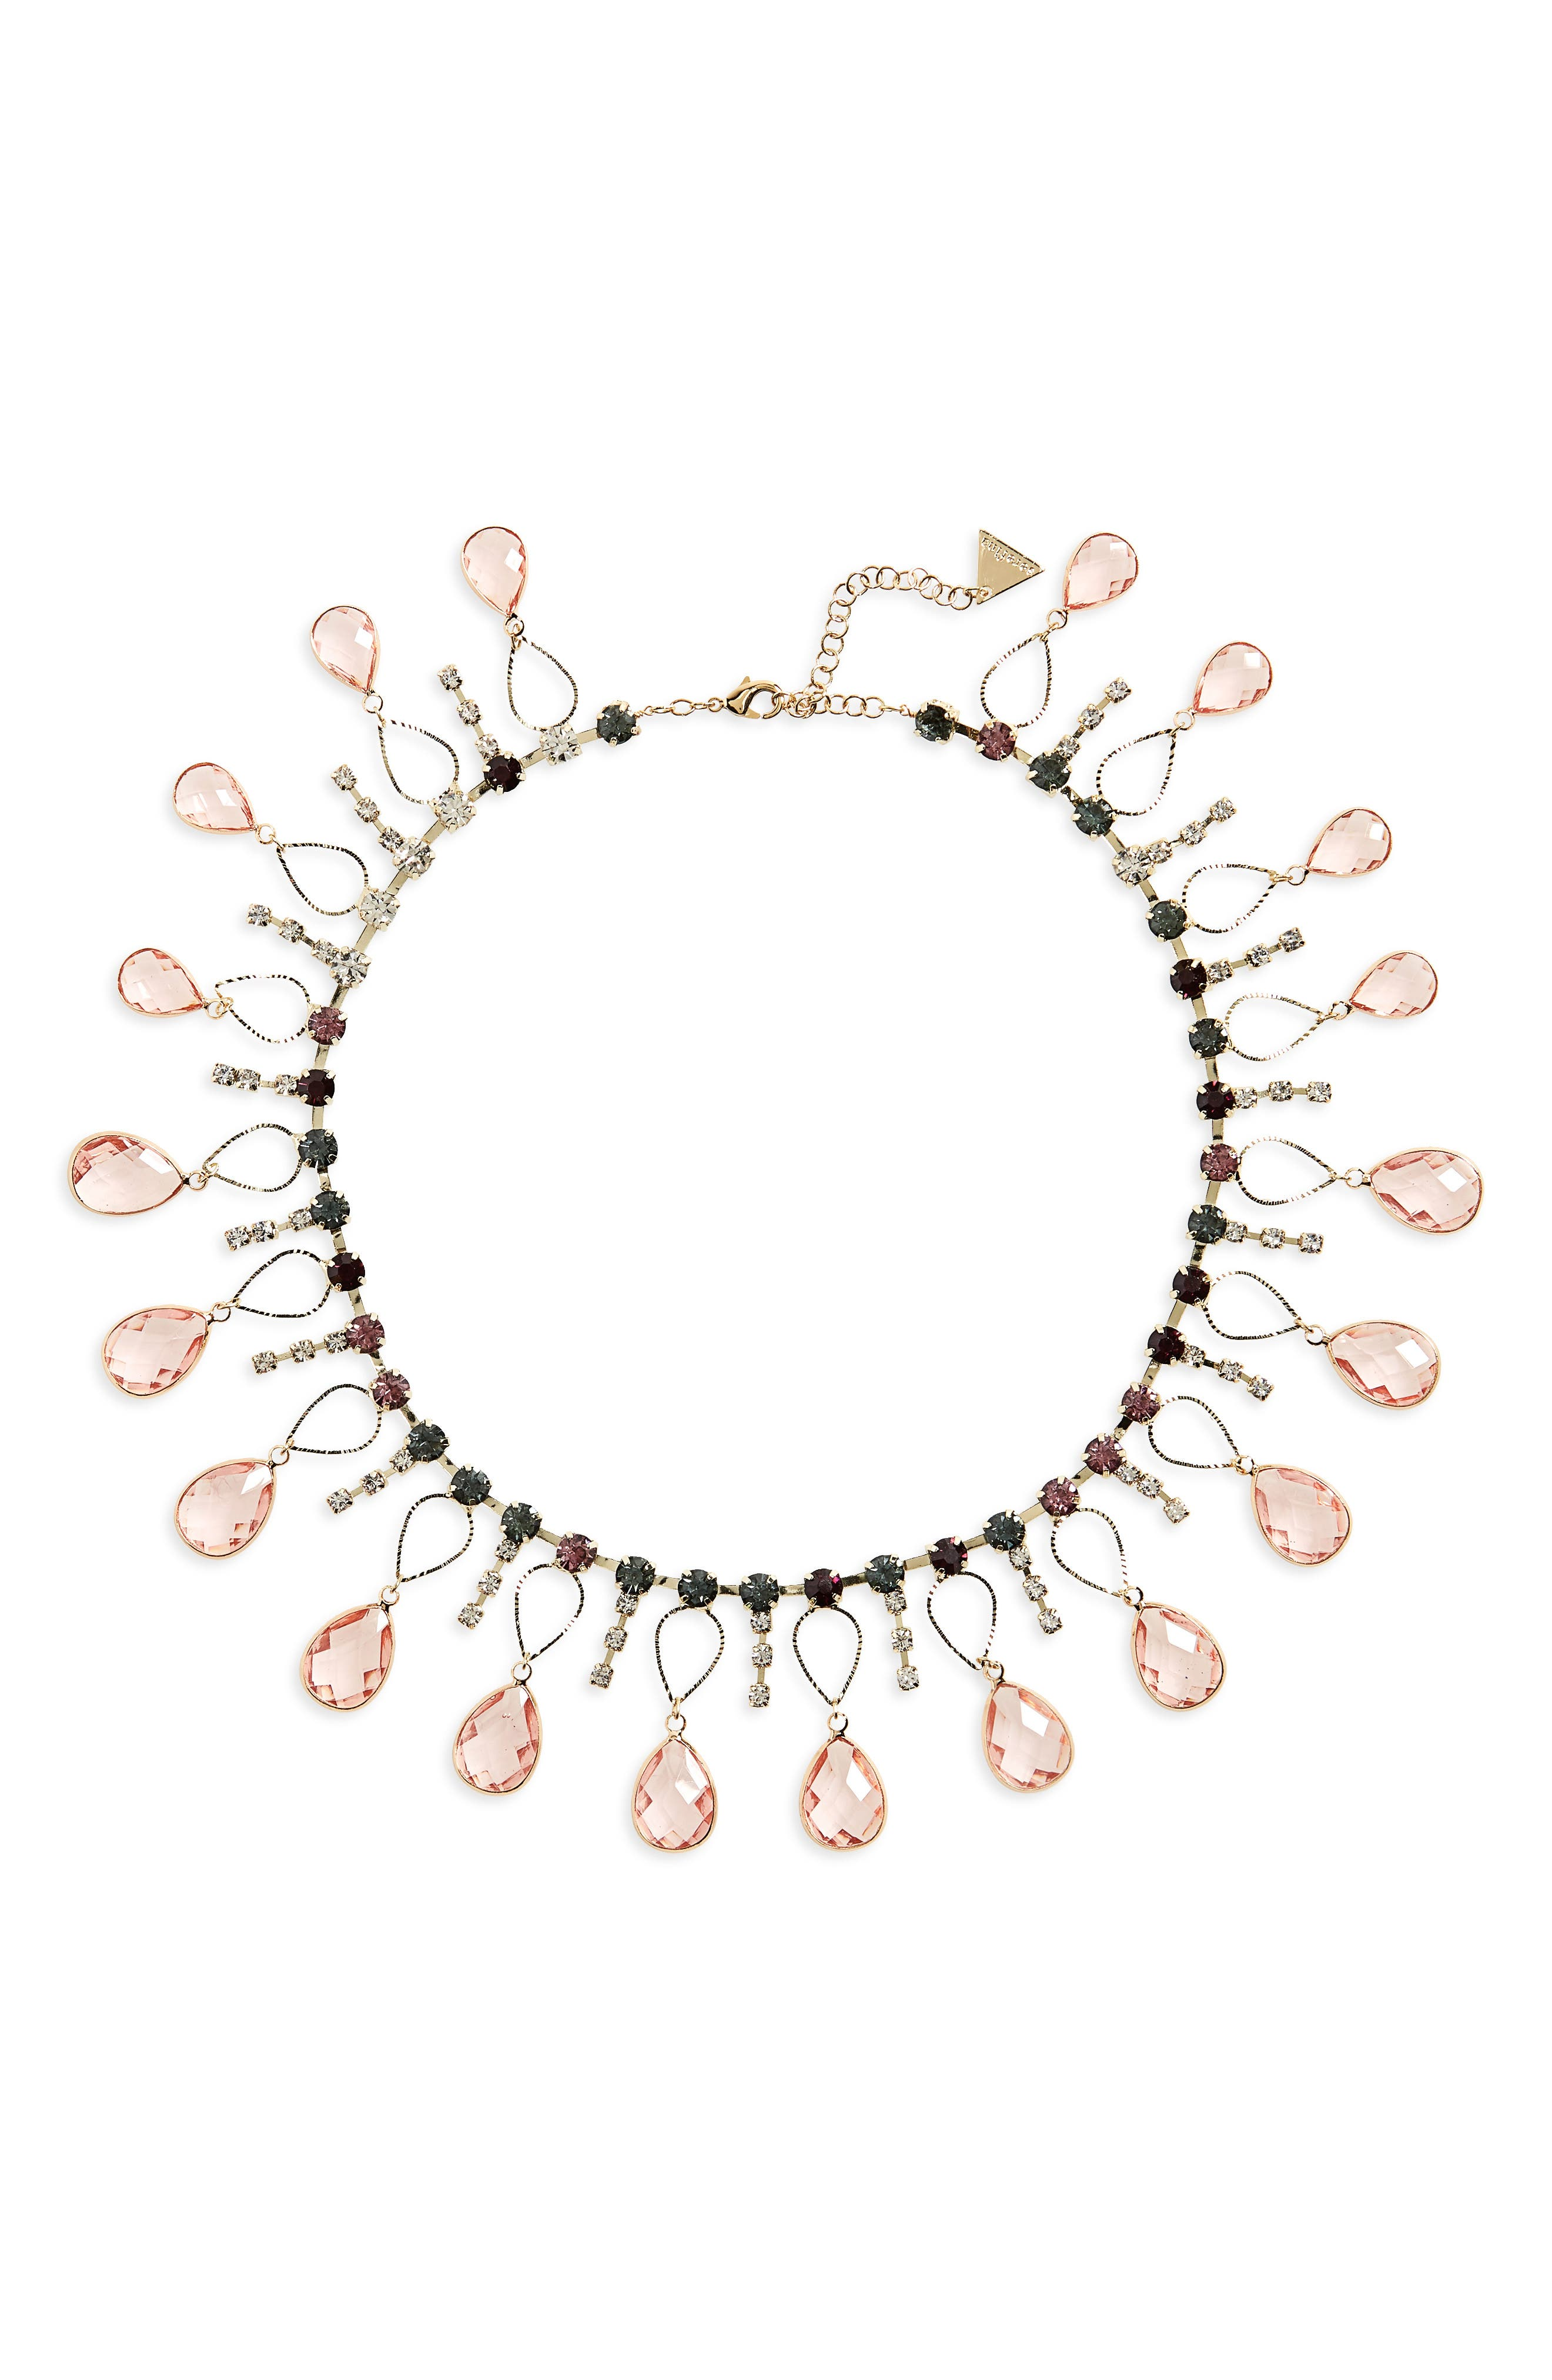 Scattered Crystal Necklace,                             Main thumbnail 1, color,                             660